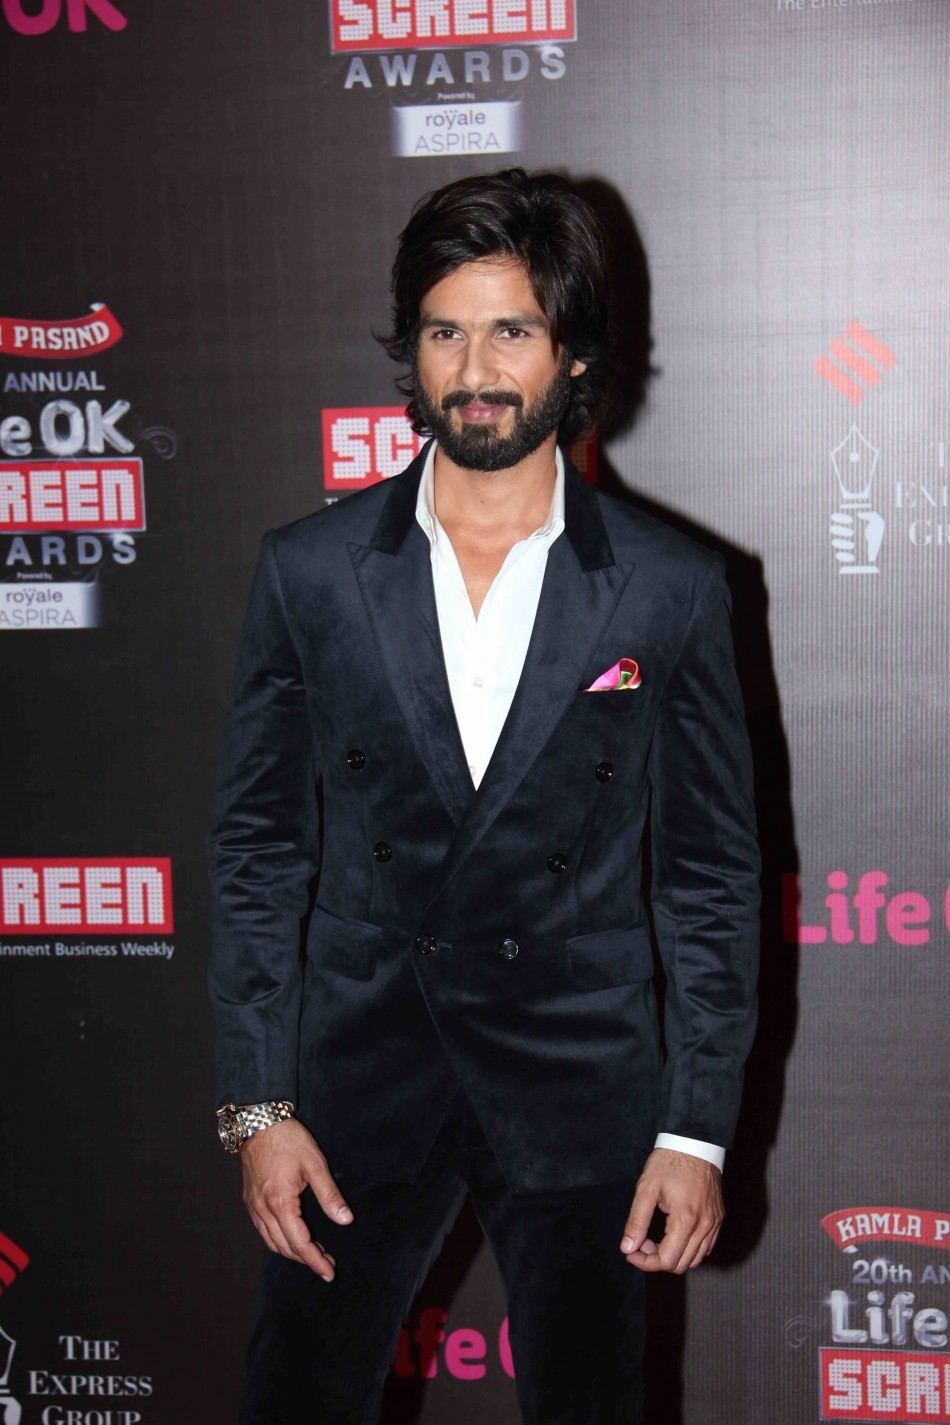 20th Annual Screen Awards